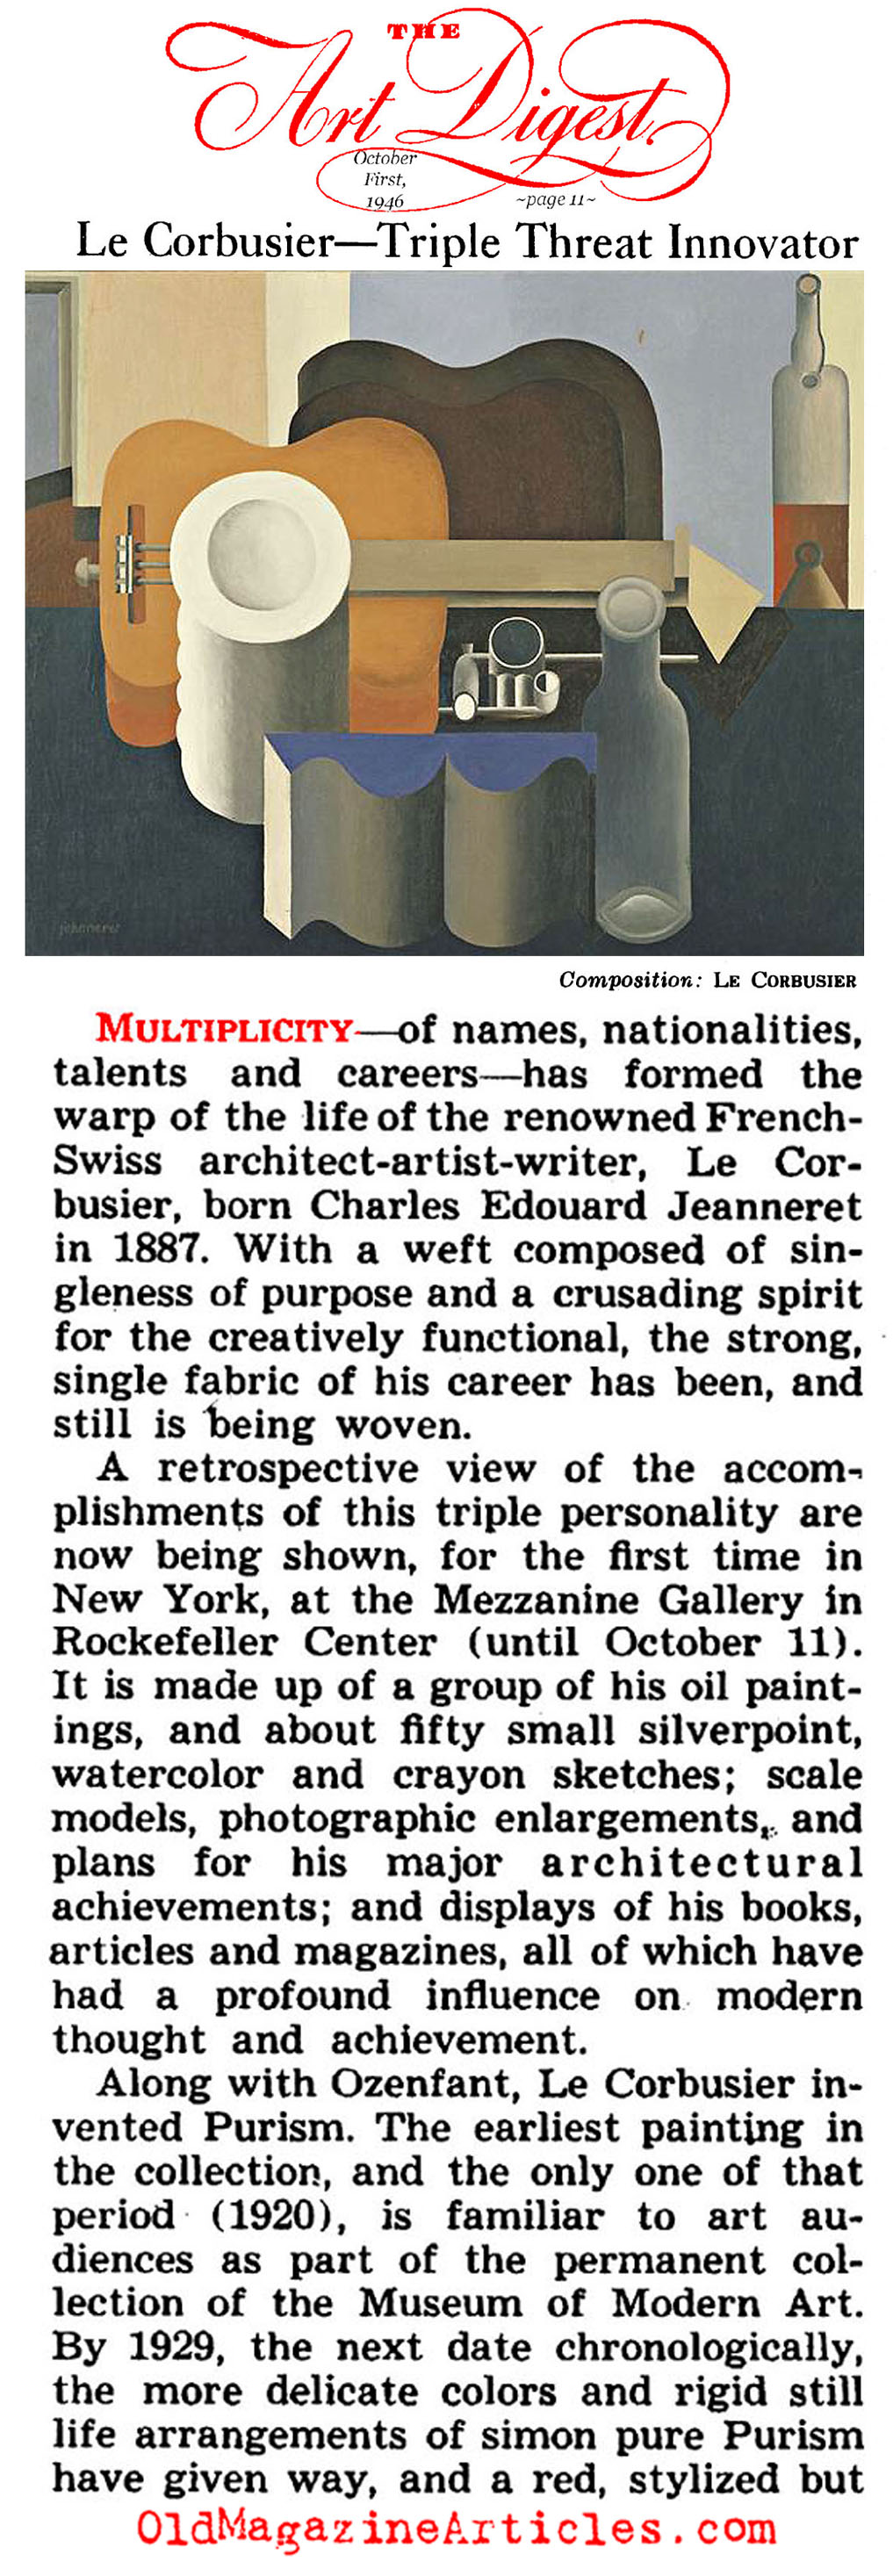 New York Exhibit for Le Corbusier (Art Digest, 1946)